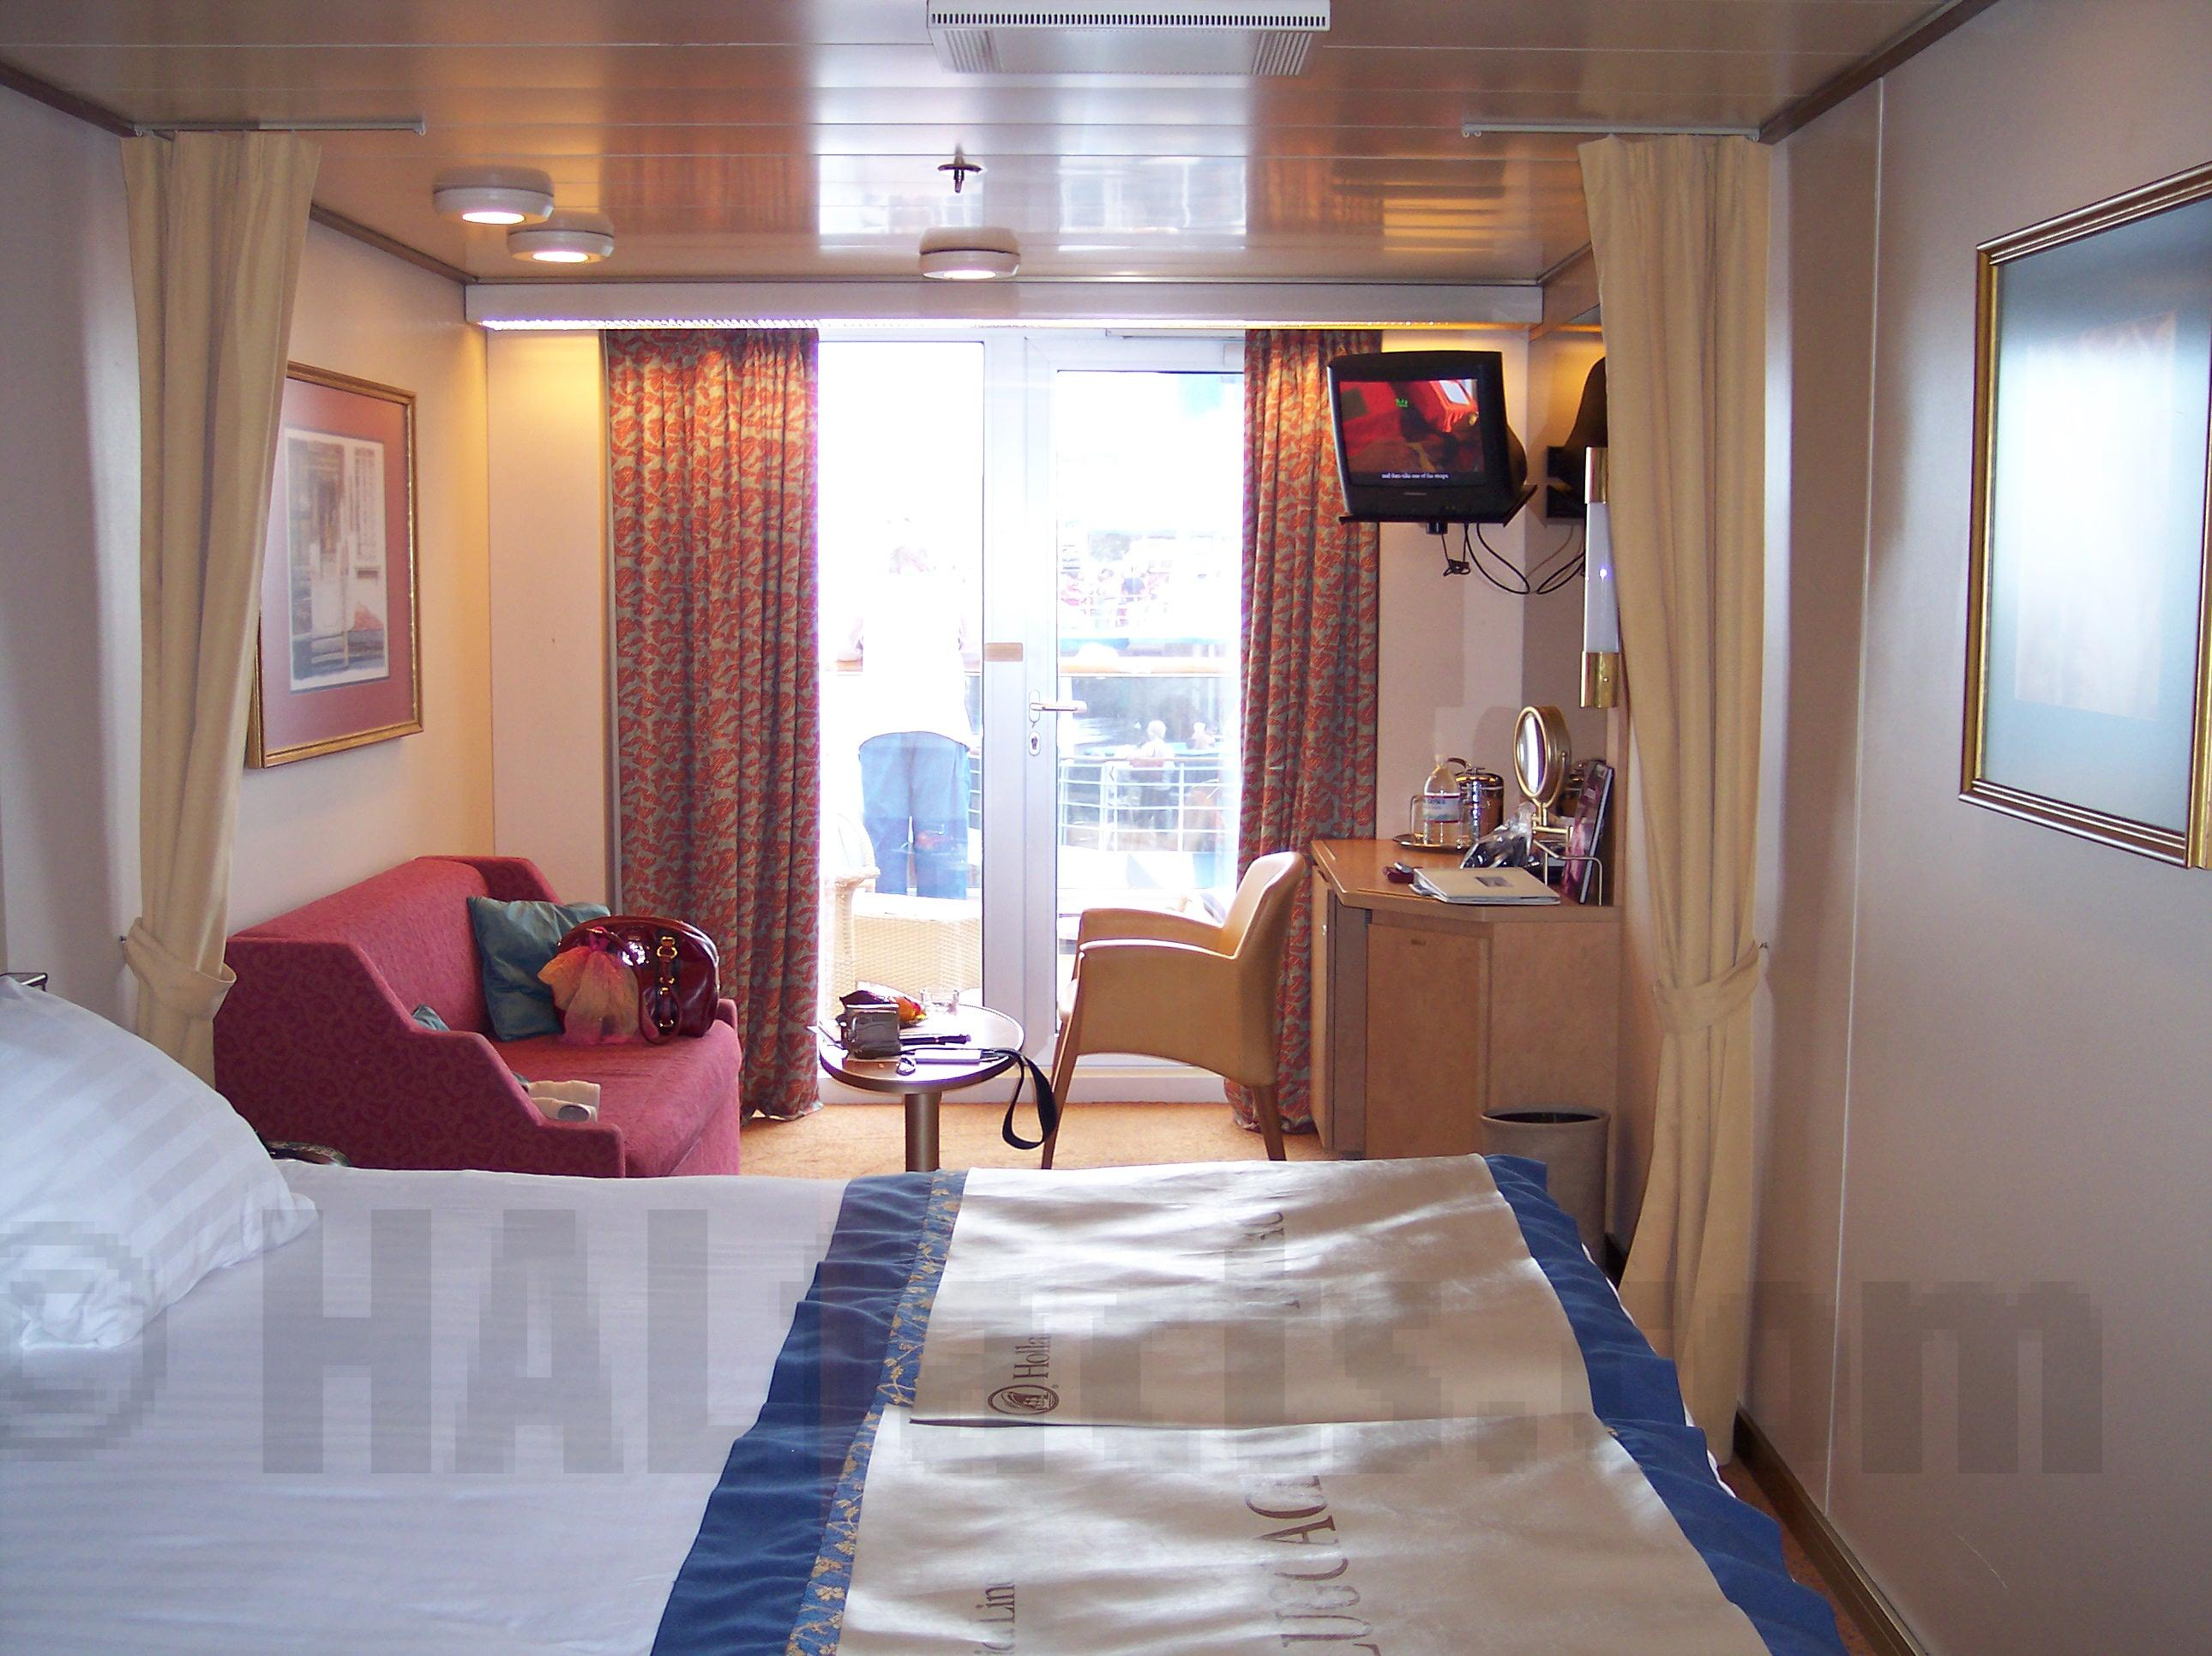 Cabines Costa Neoclassica 15235971 furthermore Category as well Doku moreover Heli Skiing likewise 4179 Zuiderdam. on staterooms